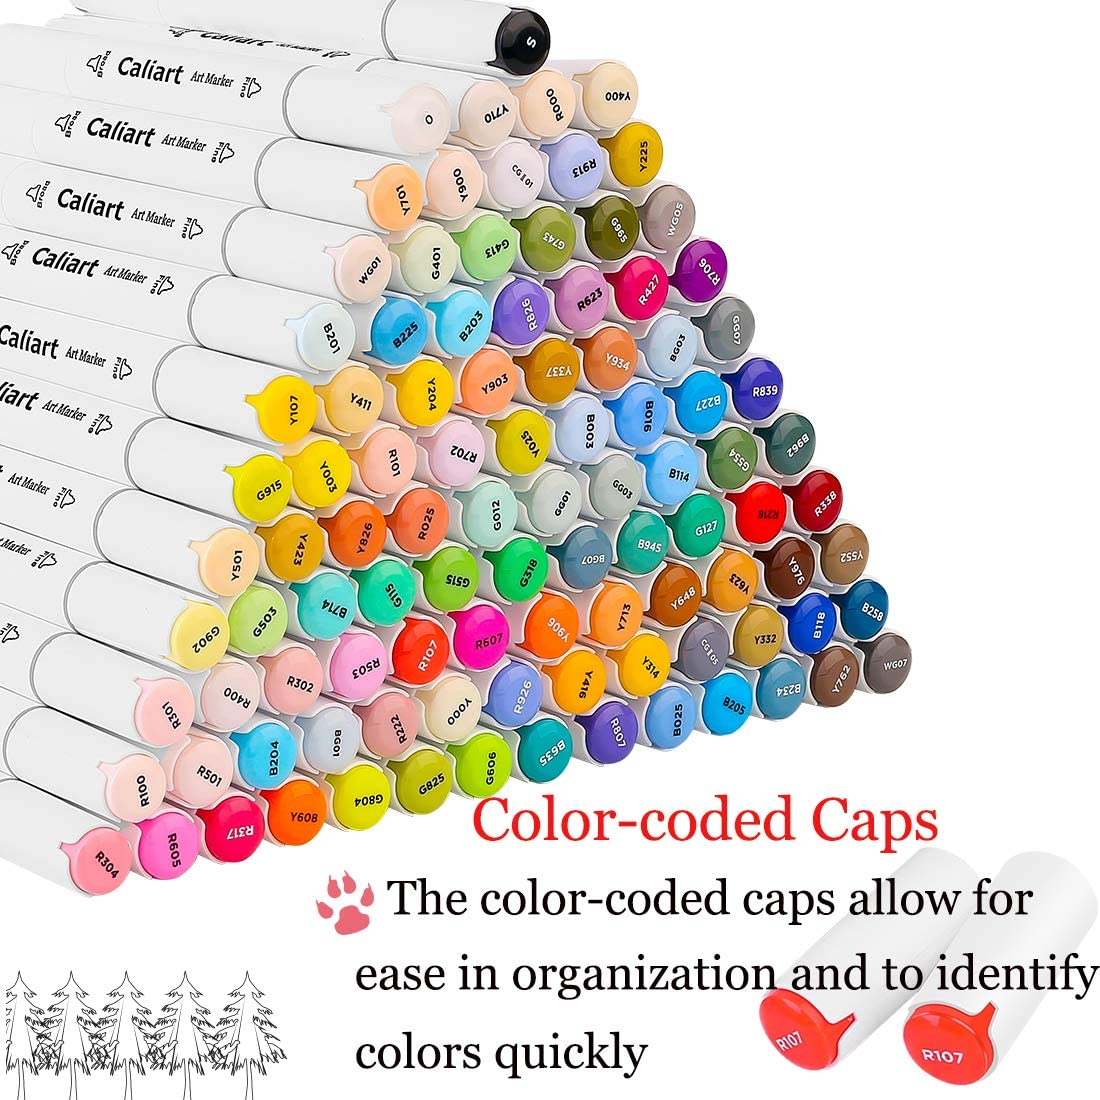 Caliart 100 Colors Artist Alcohol Markers Dual Tip Art Markers Twin Sketch Markers Pens Permanent Alcohol Based Markers with Case for Adult Kids Coloring Drawing Sketching Card Making Illustration: Arts, Crafts & Sewing